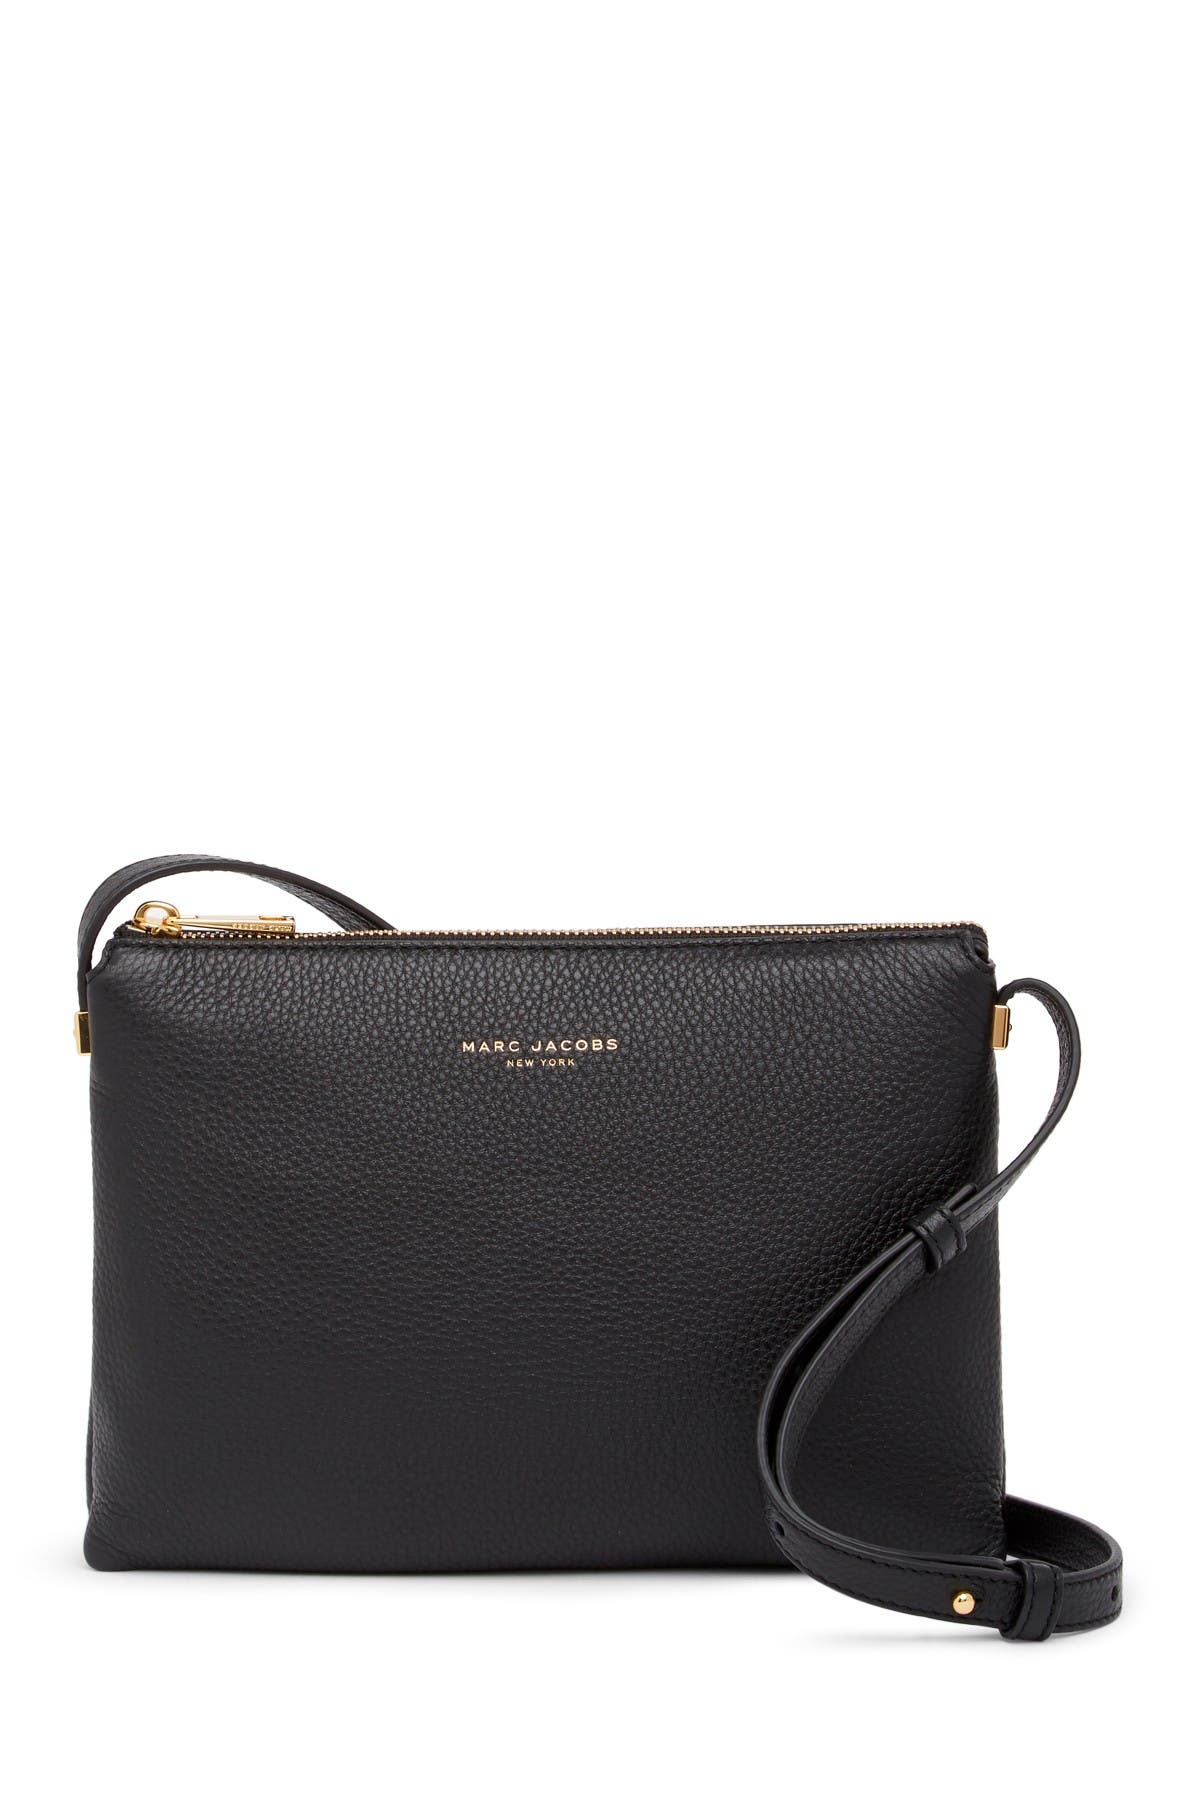 Image of Marc Jacobs Leather Crossbody Bag